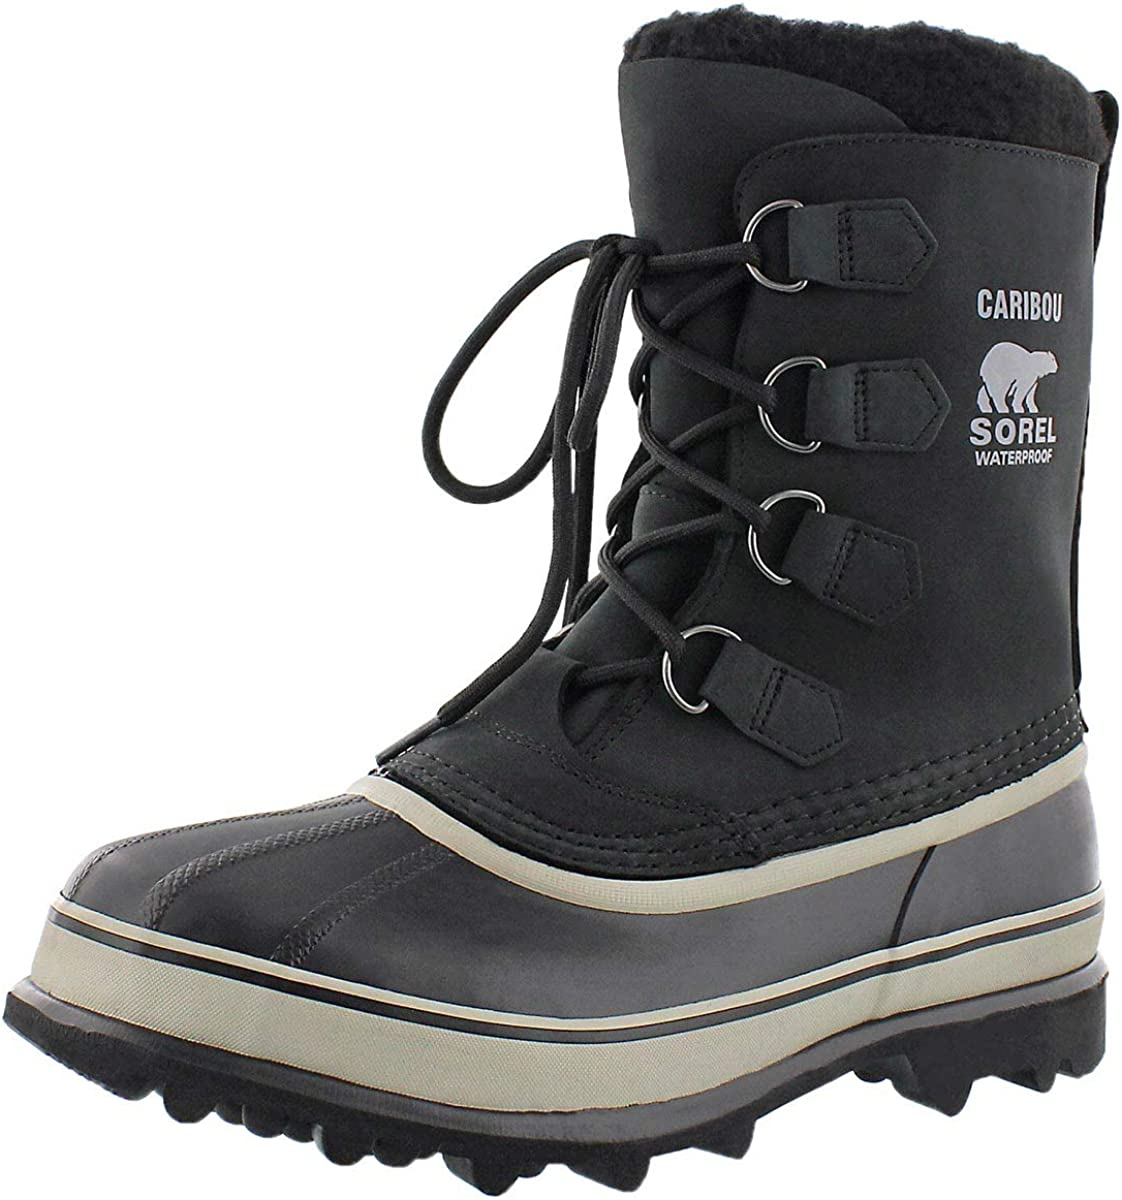 Sorel Men's Caribou Easy-to-use Max 72% OFF